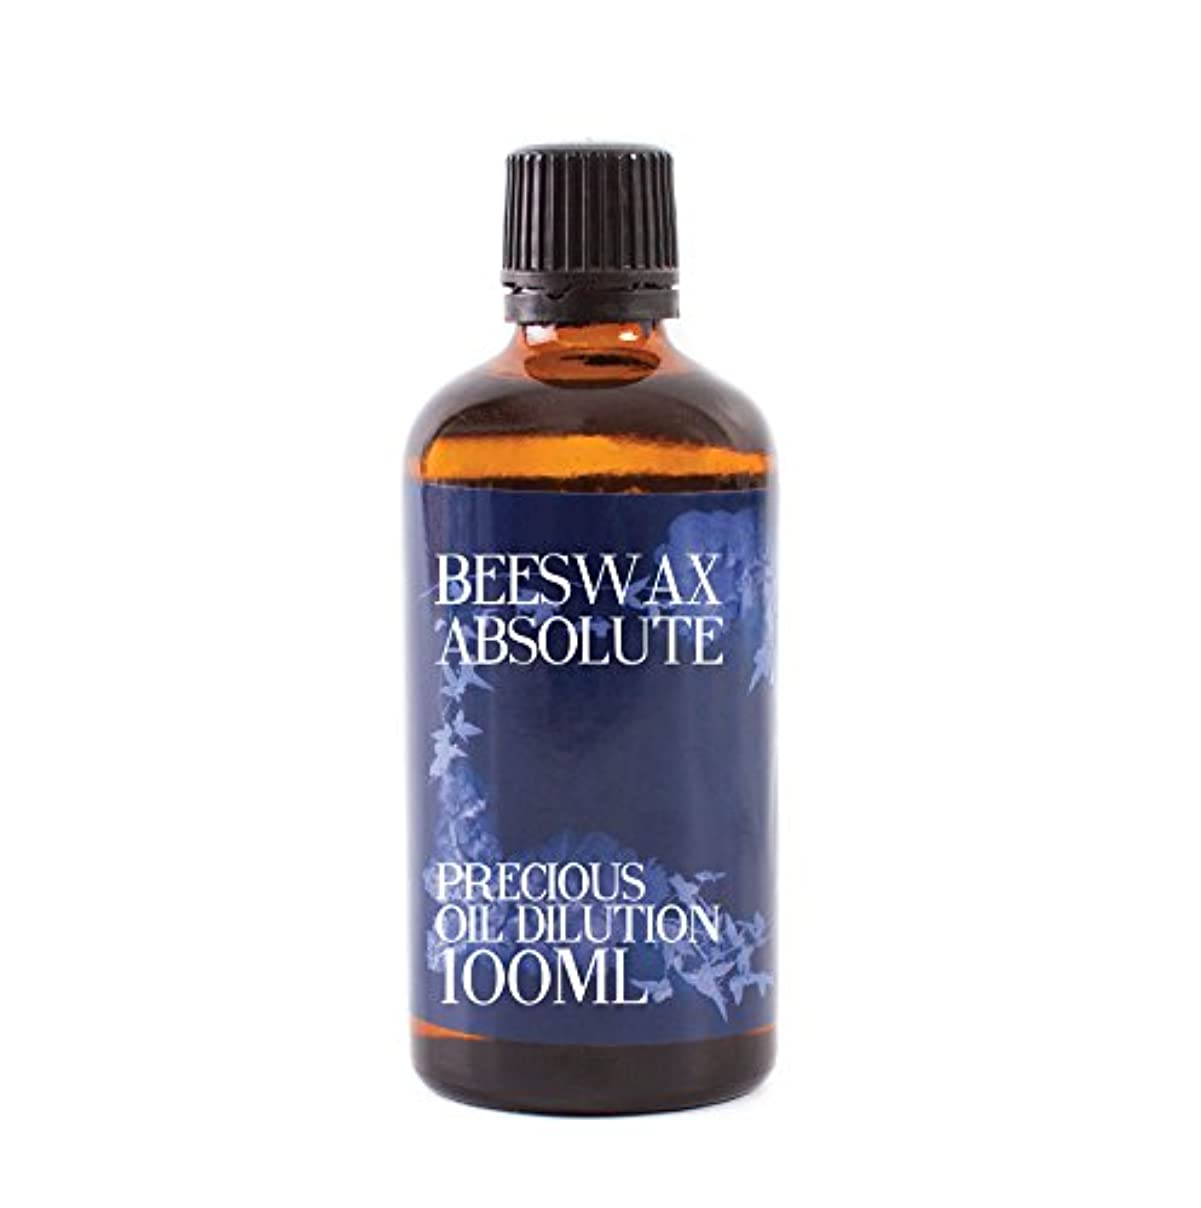 吸収する流ウィザードBeeswax Absolute Oil Dilution - 100ml